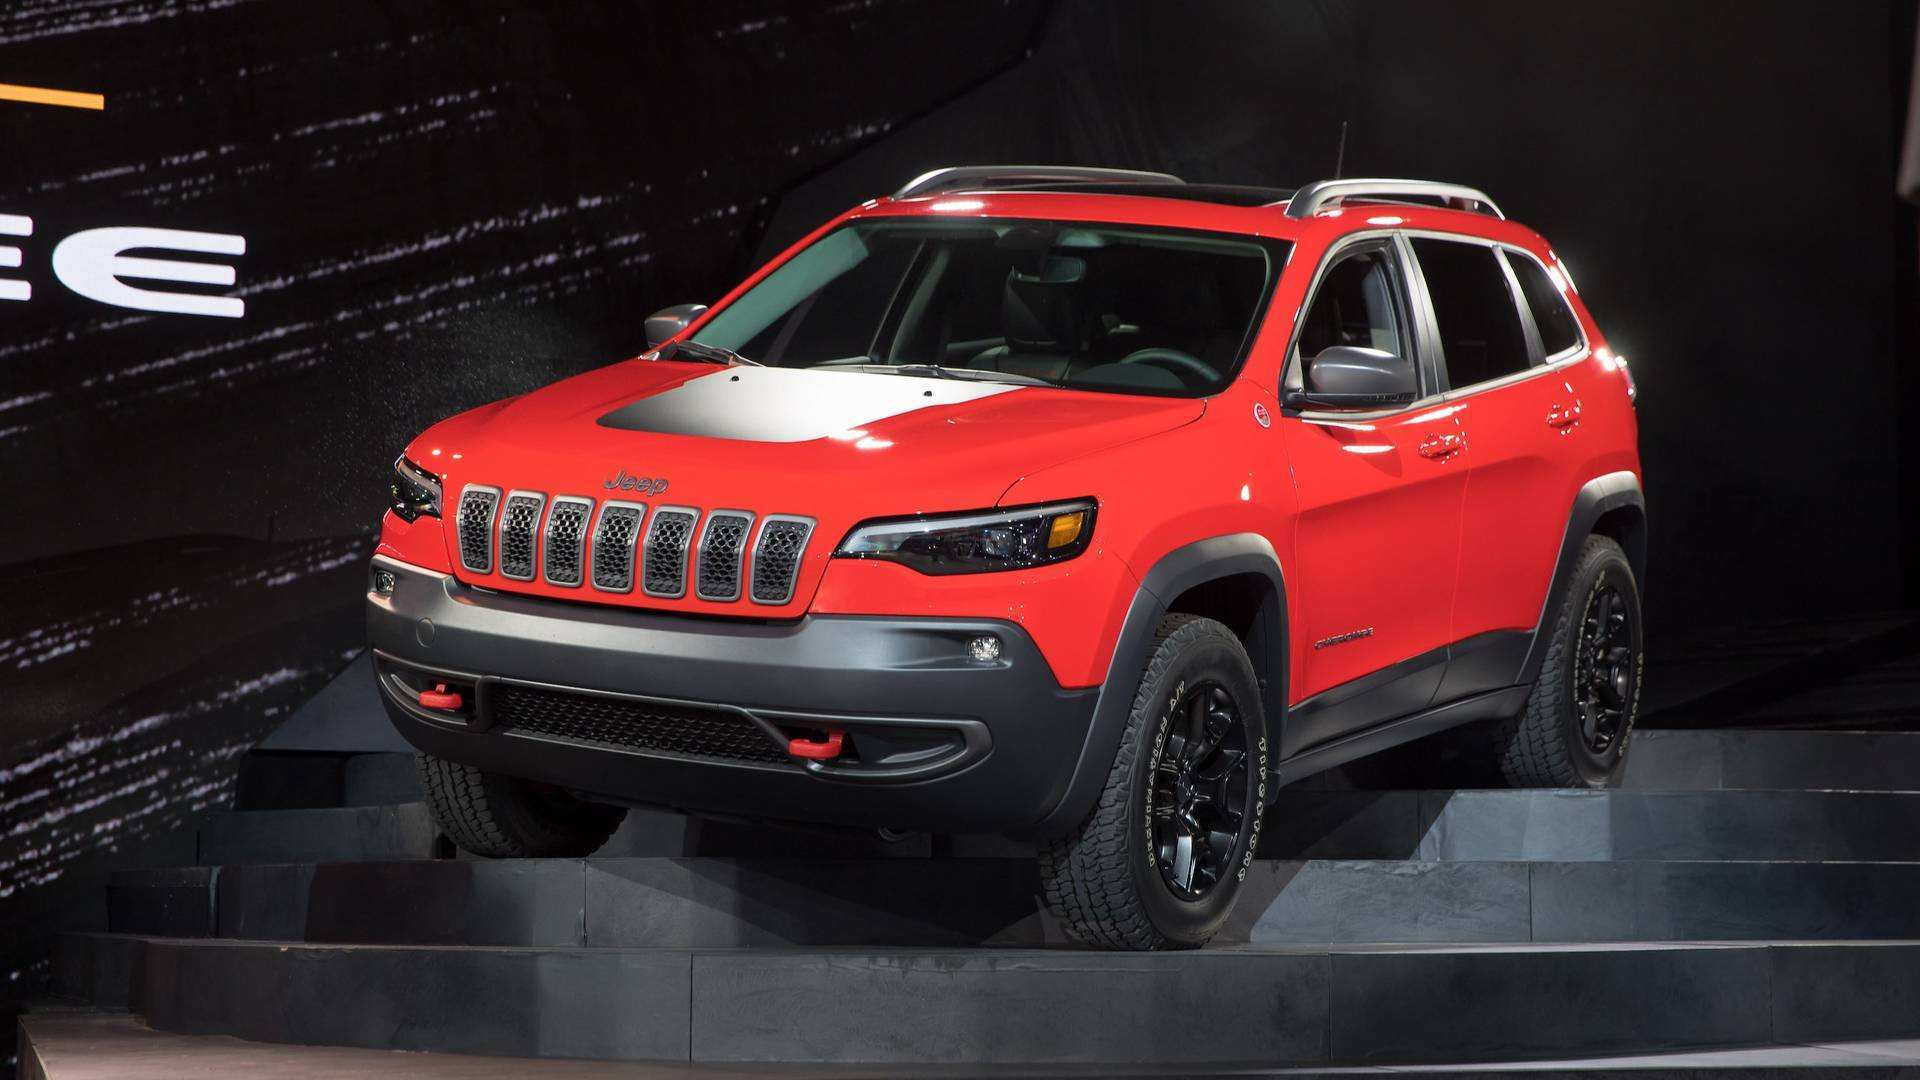 27 Best Review Jeep Cherokee 2019 Video Interior Exterior And Review Specs with Jeep Cherokee 2019 Video Interior Exterior And Review